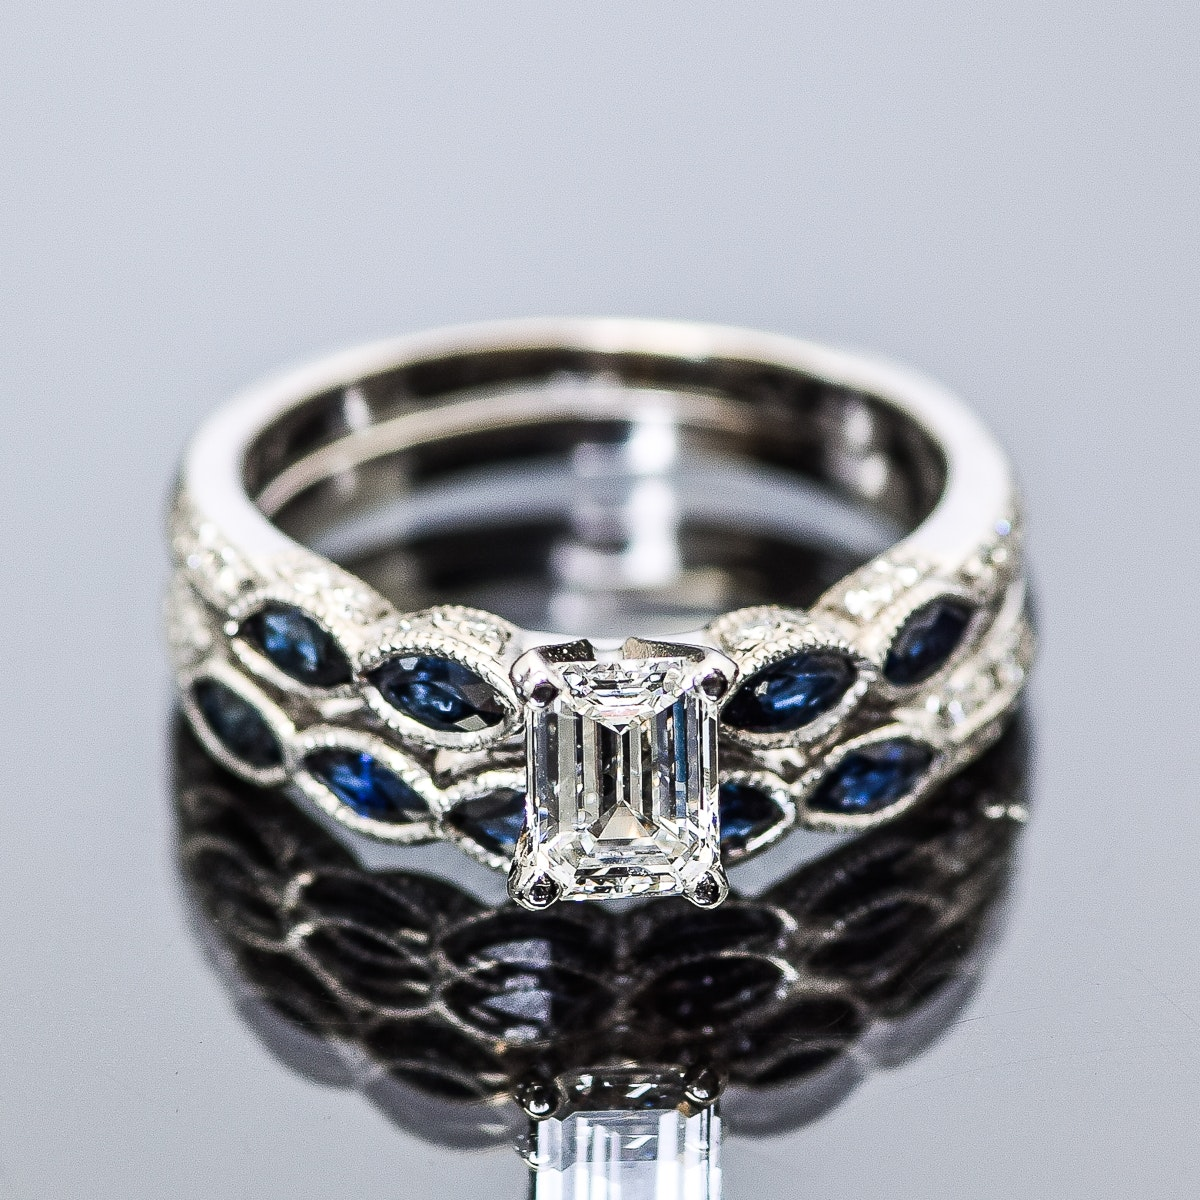 18K White Gold, Sapphire and 1.03 CTW Diamond Wedding Ring Set